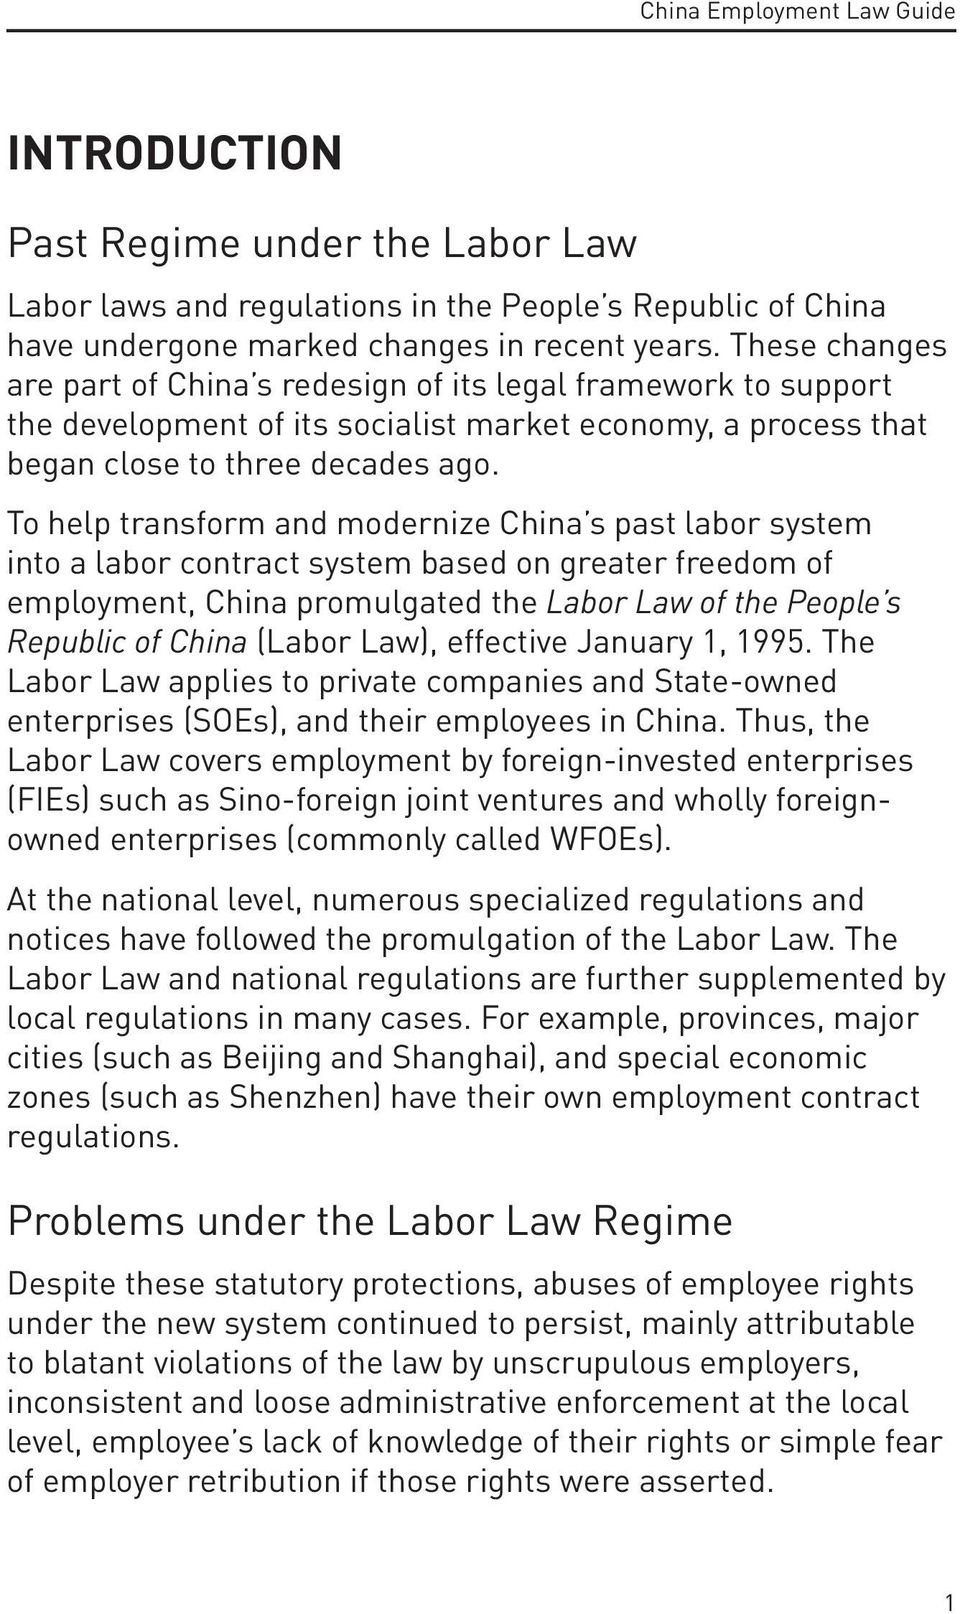 To help transform and modernize China s past labor system into a labor contract system based on greater freedom of employment, China promulgated the Labor Law of the People s Republic of China (Labor